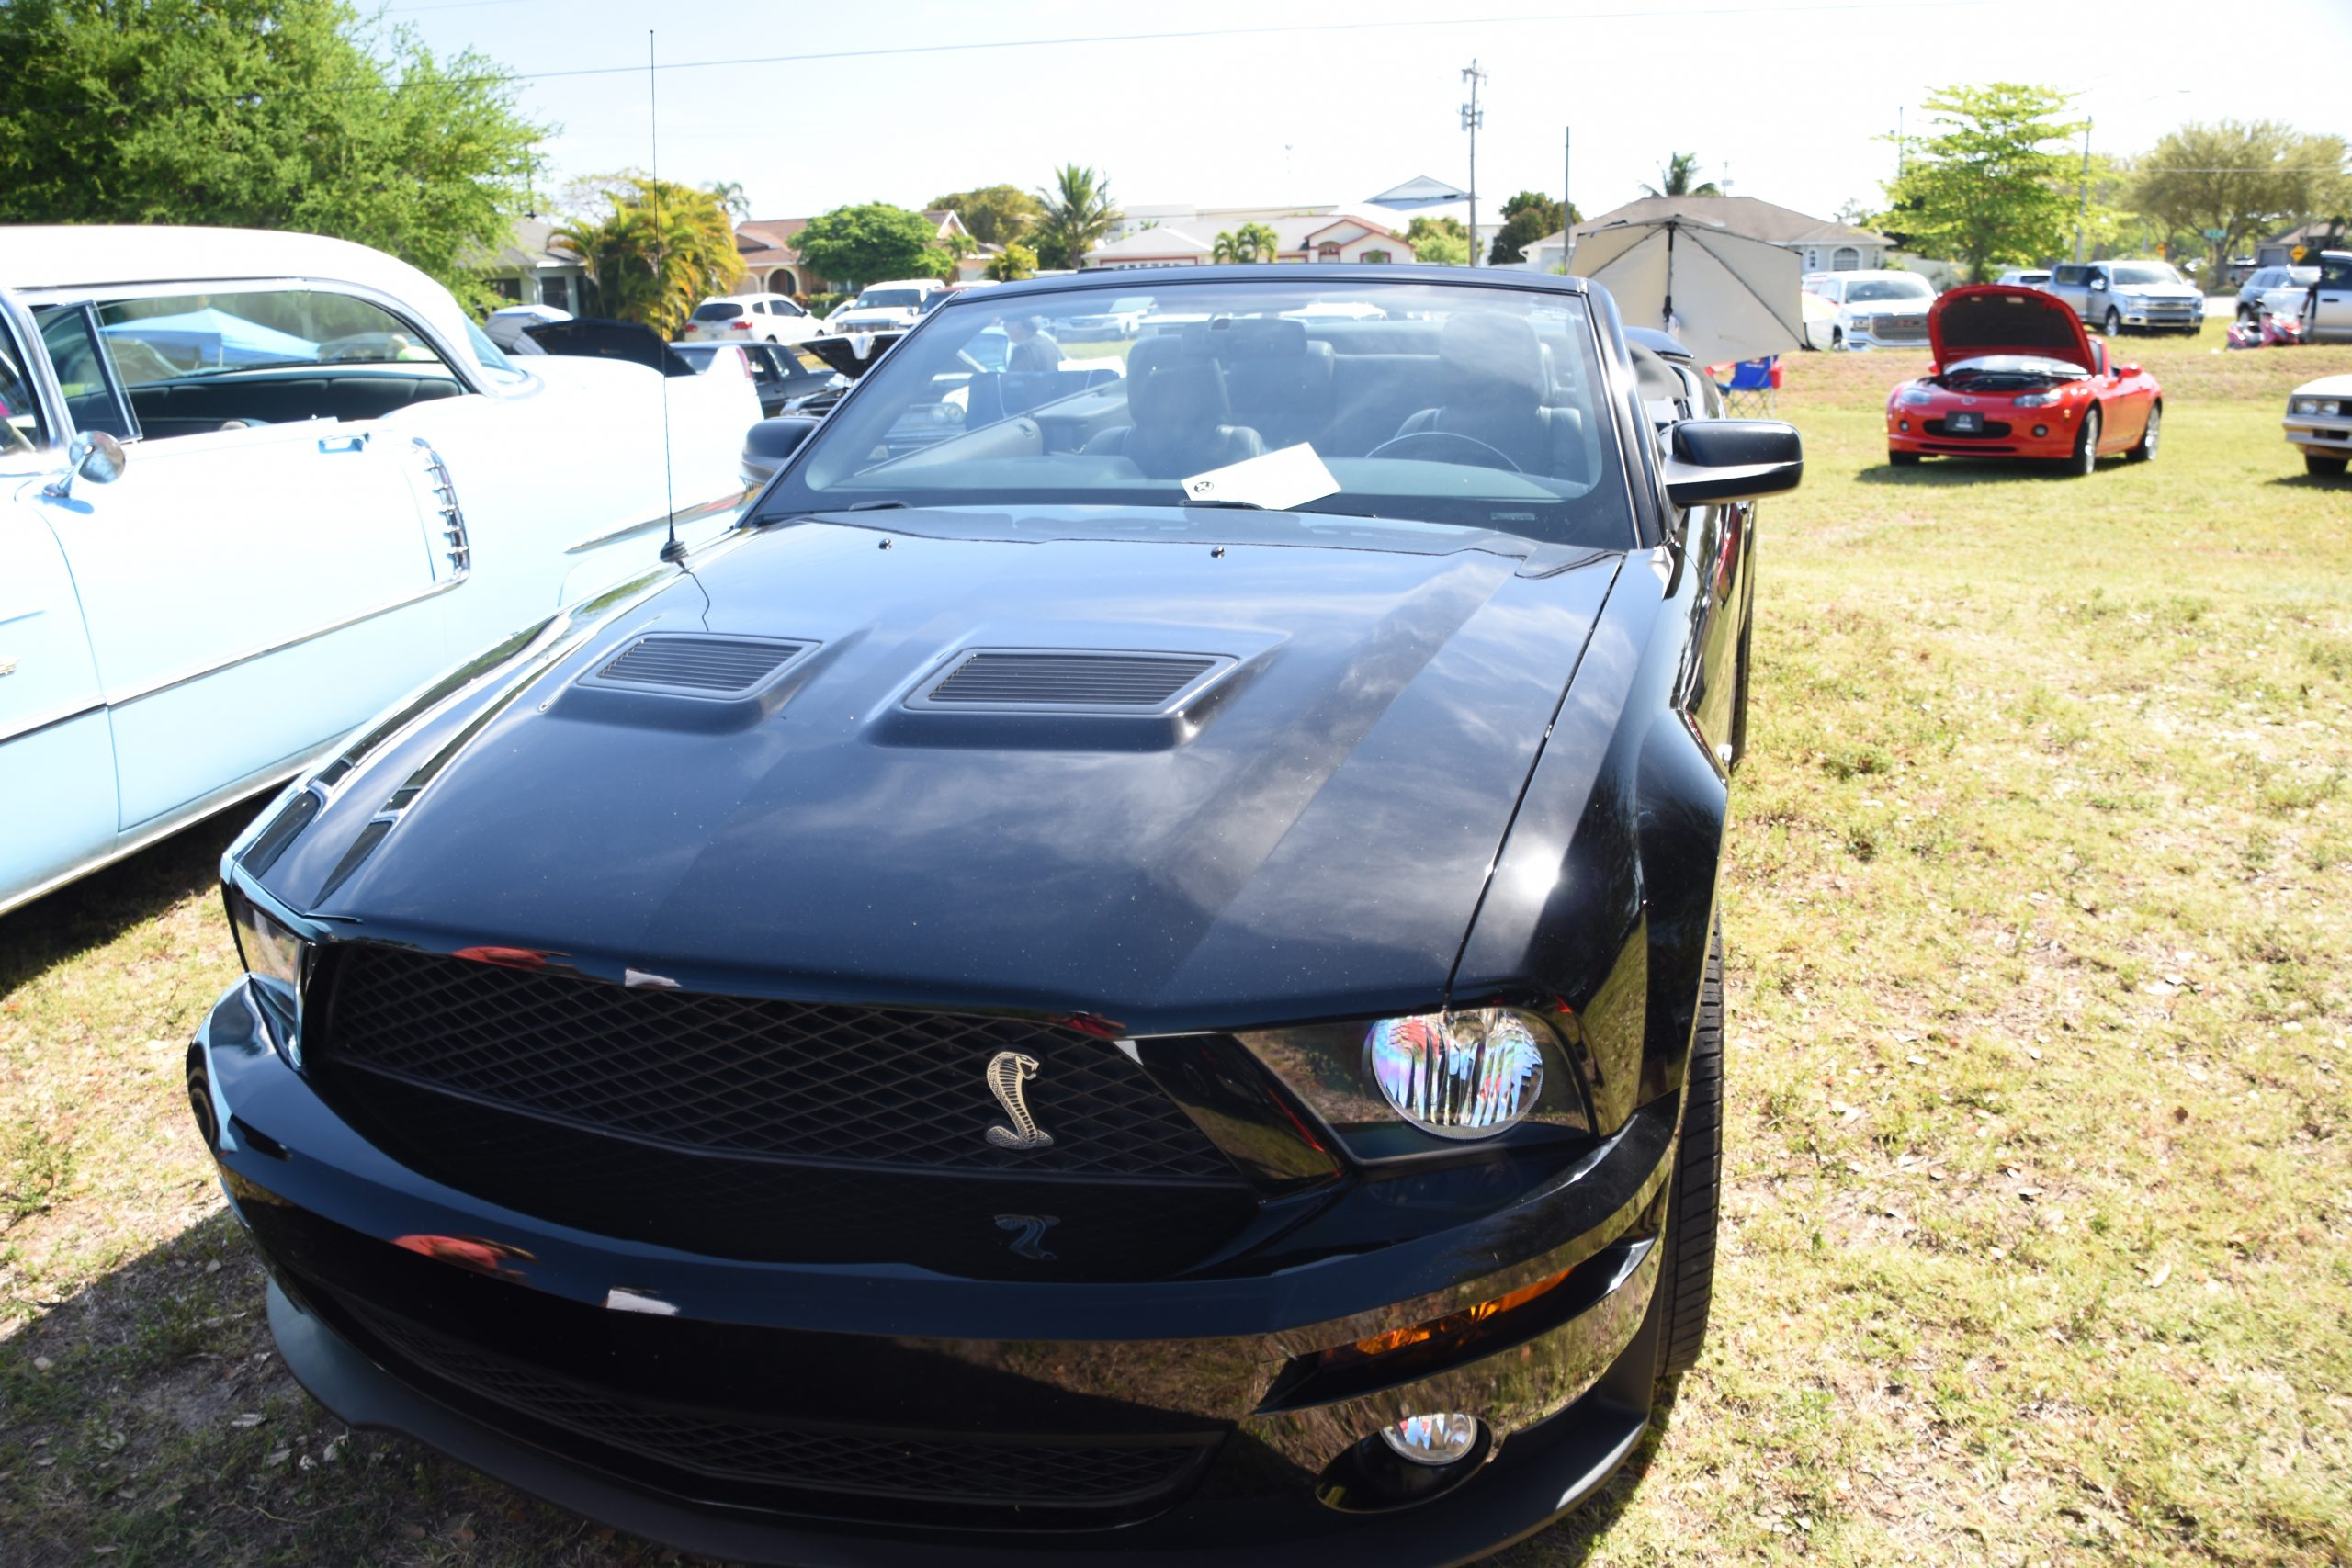 Black Mustang Shelby GT